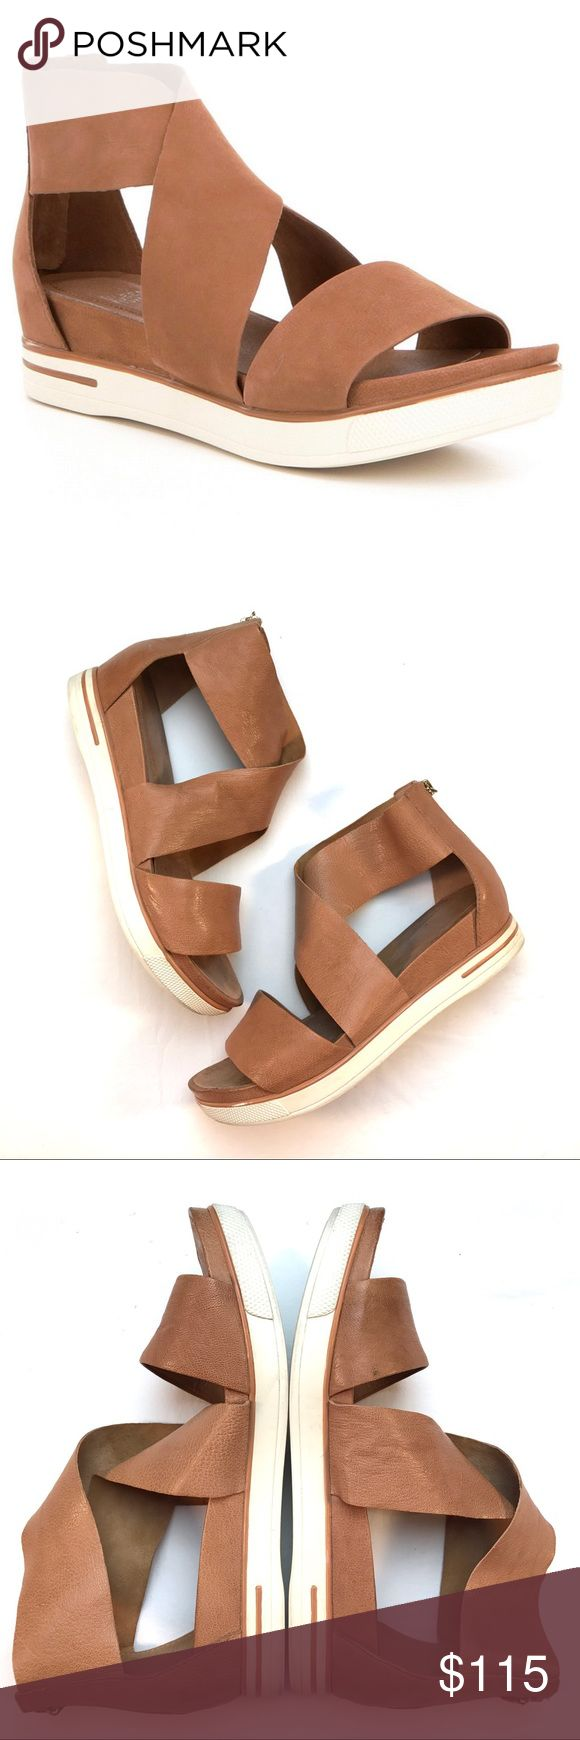 Eileen Fisher Leather Criss Cross Sport Sandals Eileen Fisher Tumbled Leather Criss Cross Banded Backstrap Sport Sandals in Camel. Soft leather straps. Rubber soles. Zip up the back. Gently worn and in great used condition. Small scuff on the front of the left Sandal. See pic 2. Size 9. Open to reasonable offers and any questions! Eileen Fisher Shoes Sandals